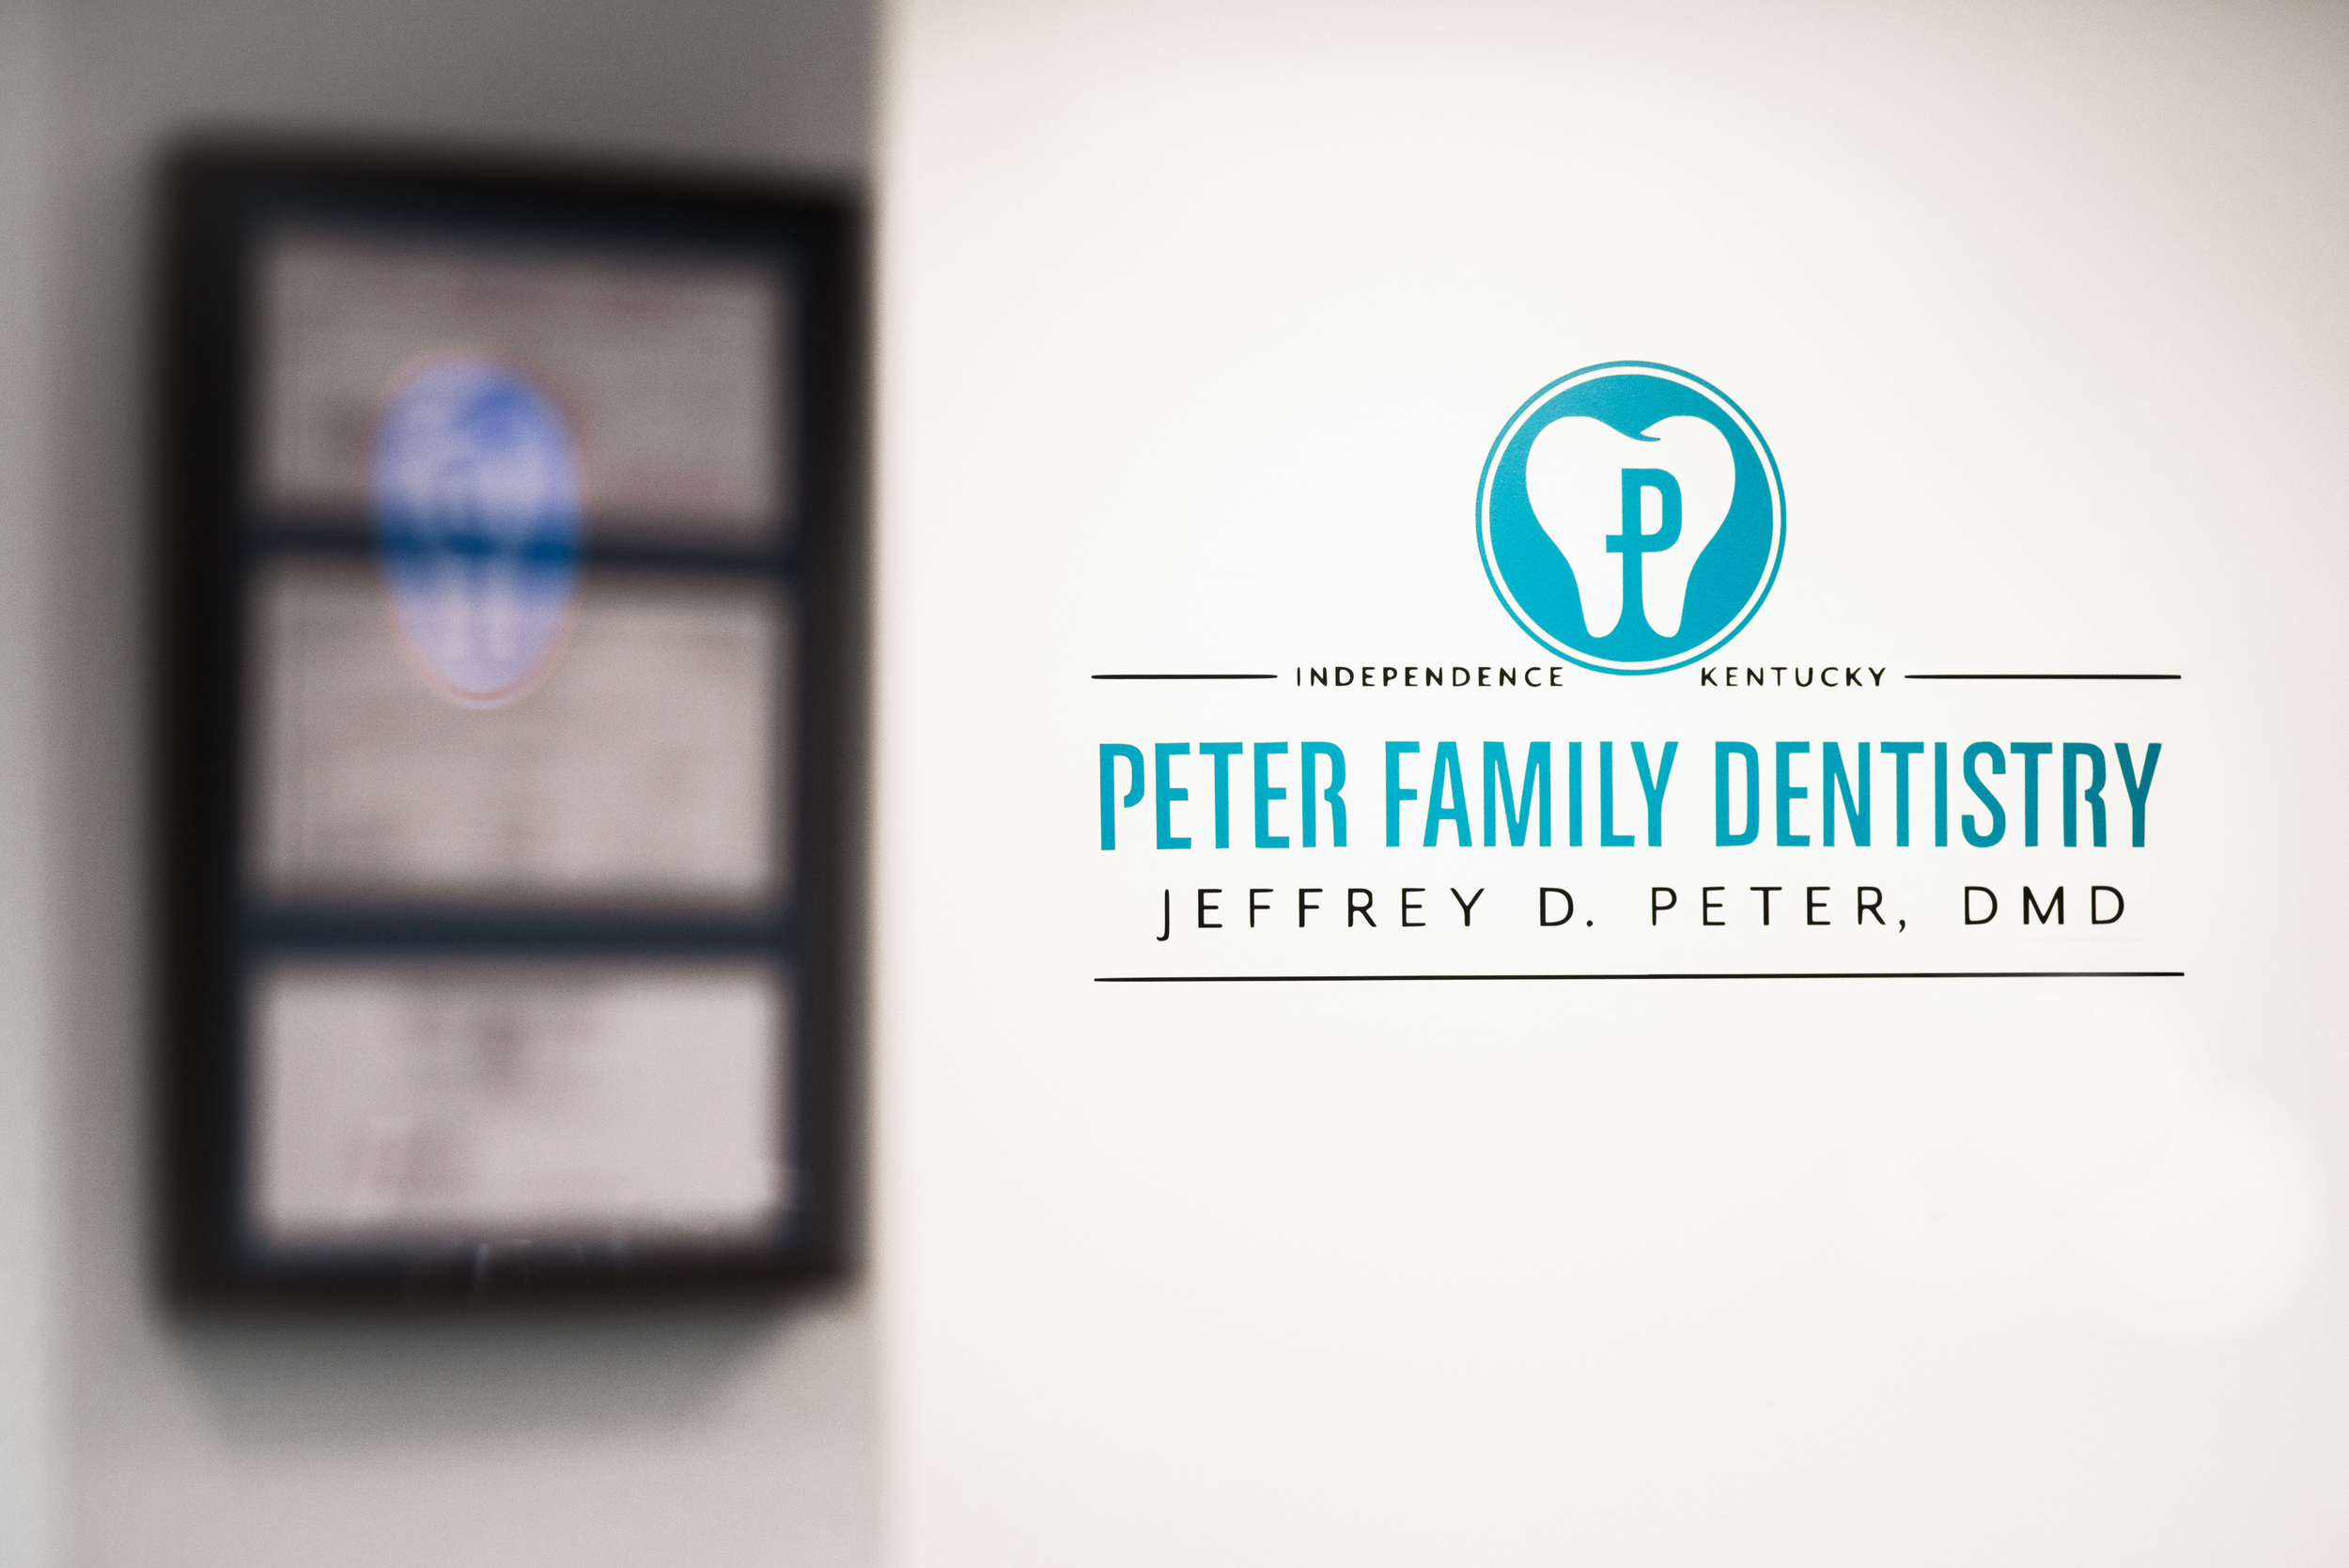 Peter Family Dentistry Logo On Wall